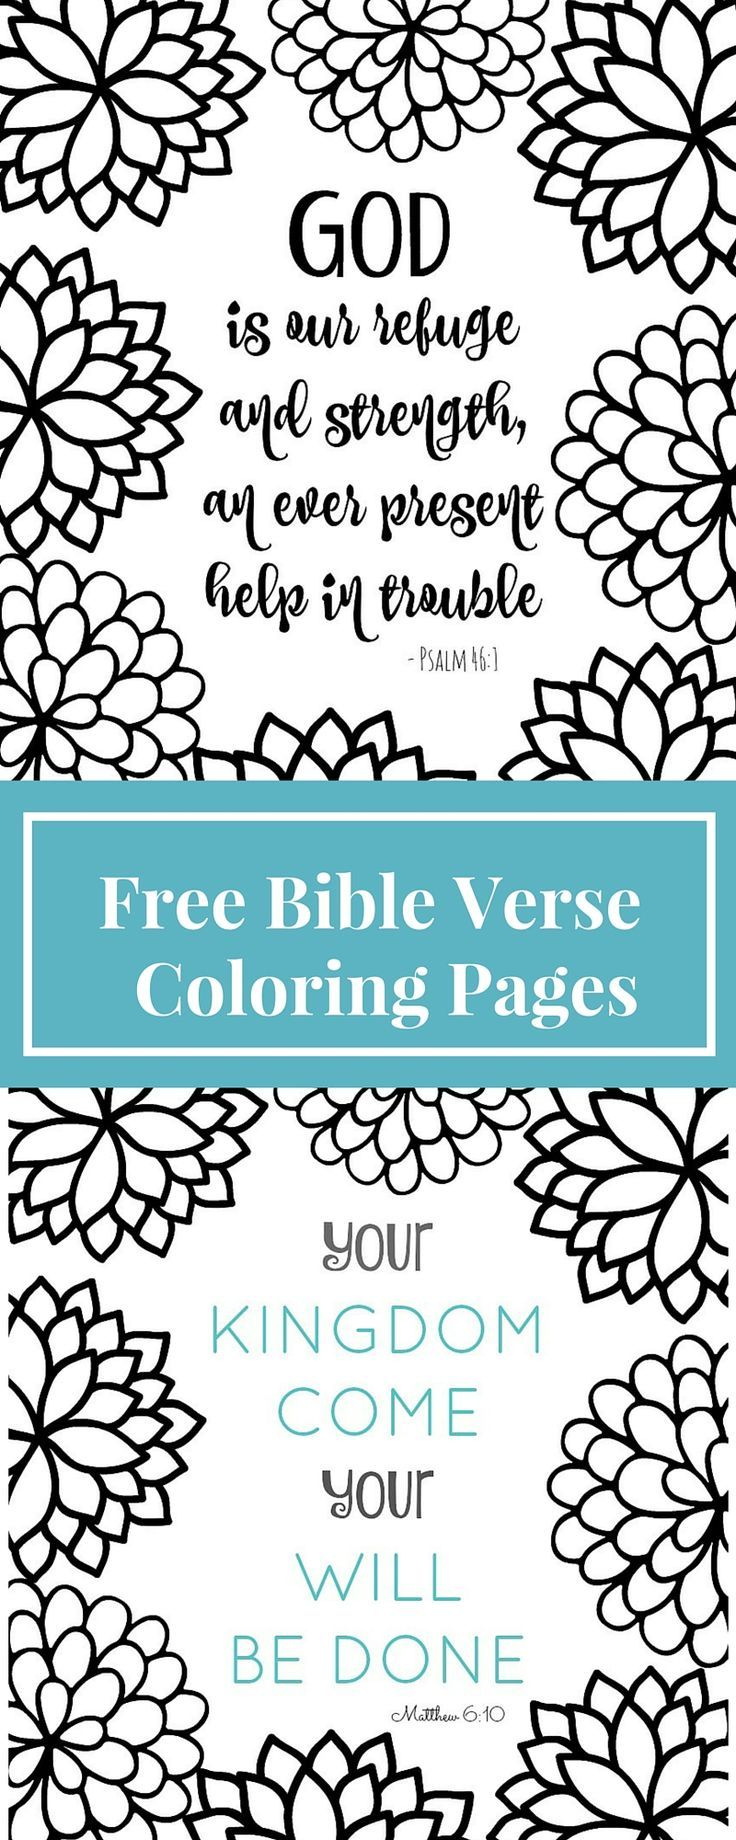 photo regarding Printable Bible Verse Coloring Pages titled 28 Free of charge Bible Verse Coloring Internet pages Down load - Coloring Sheets